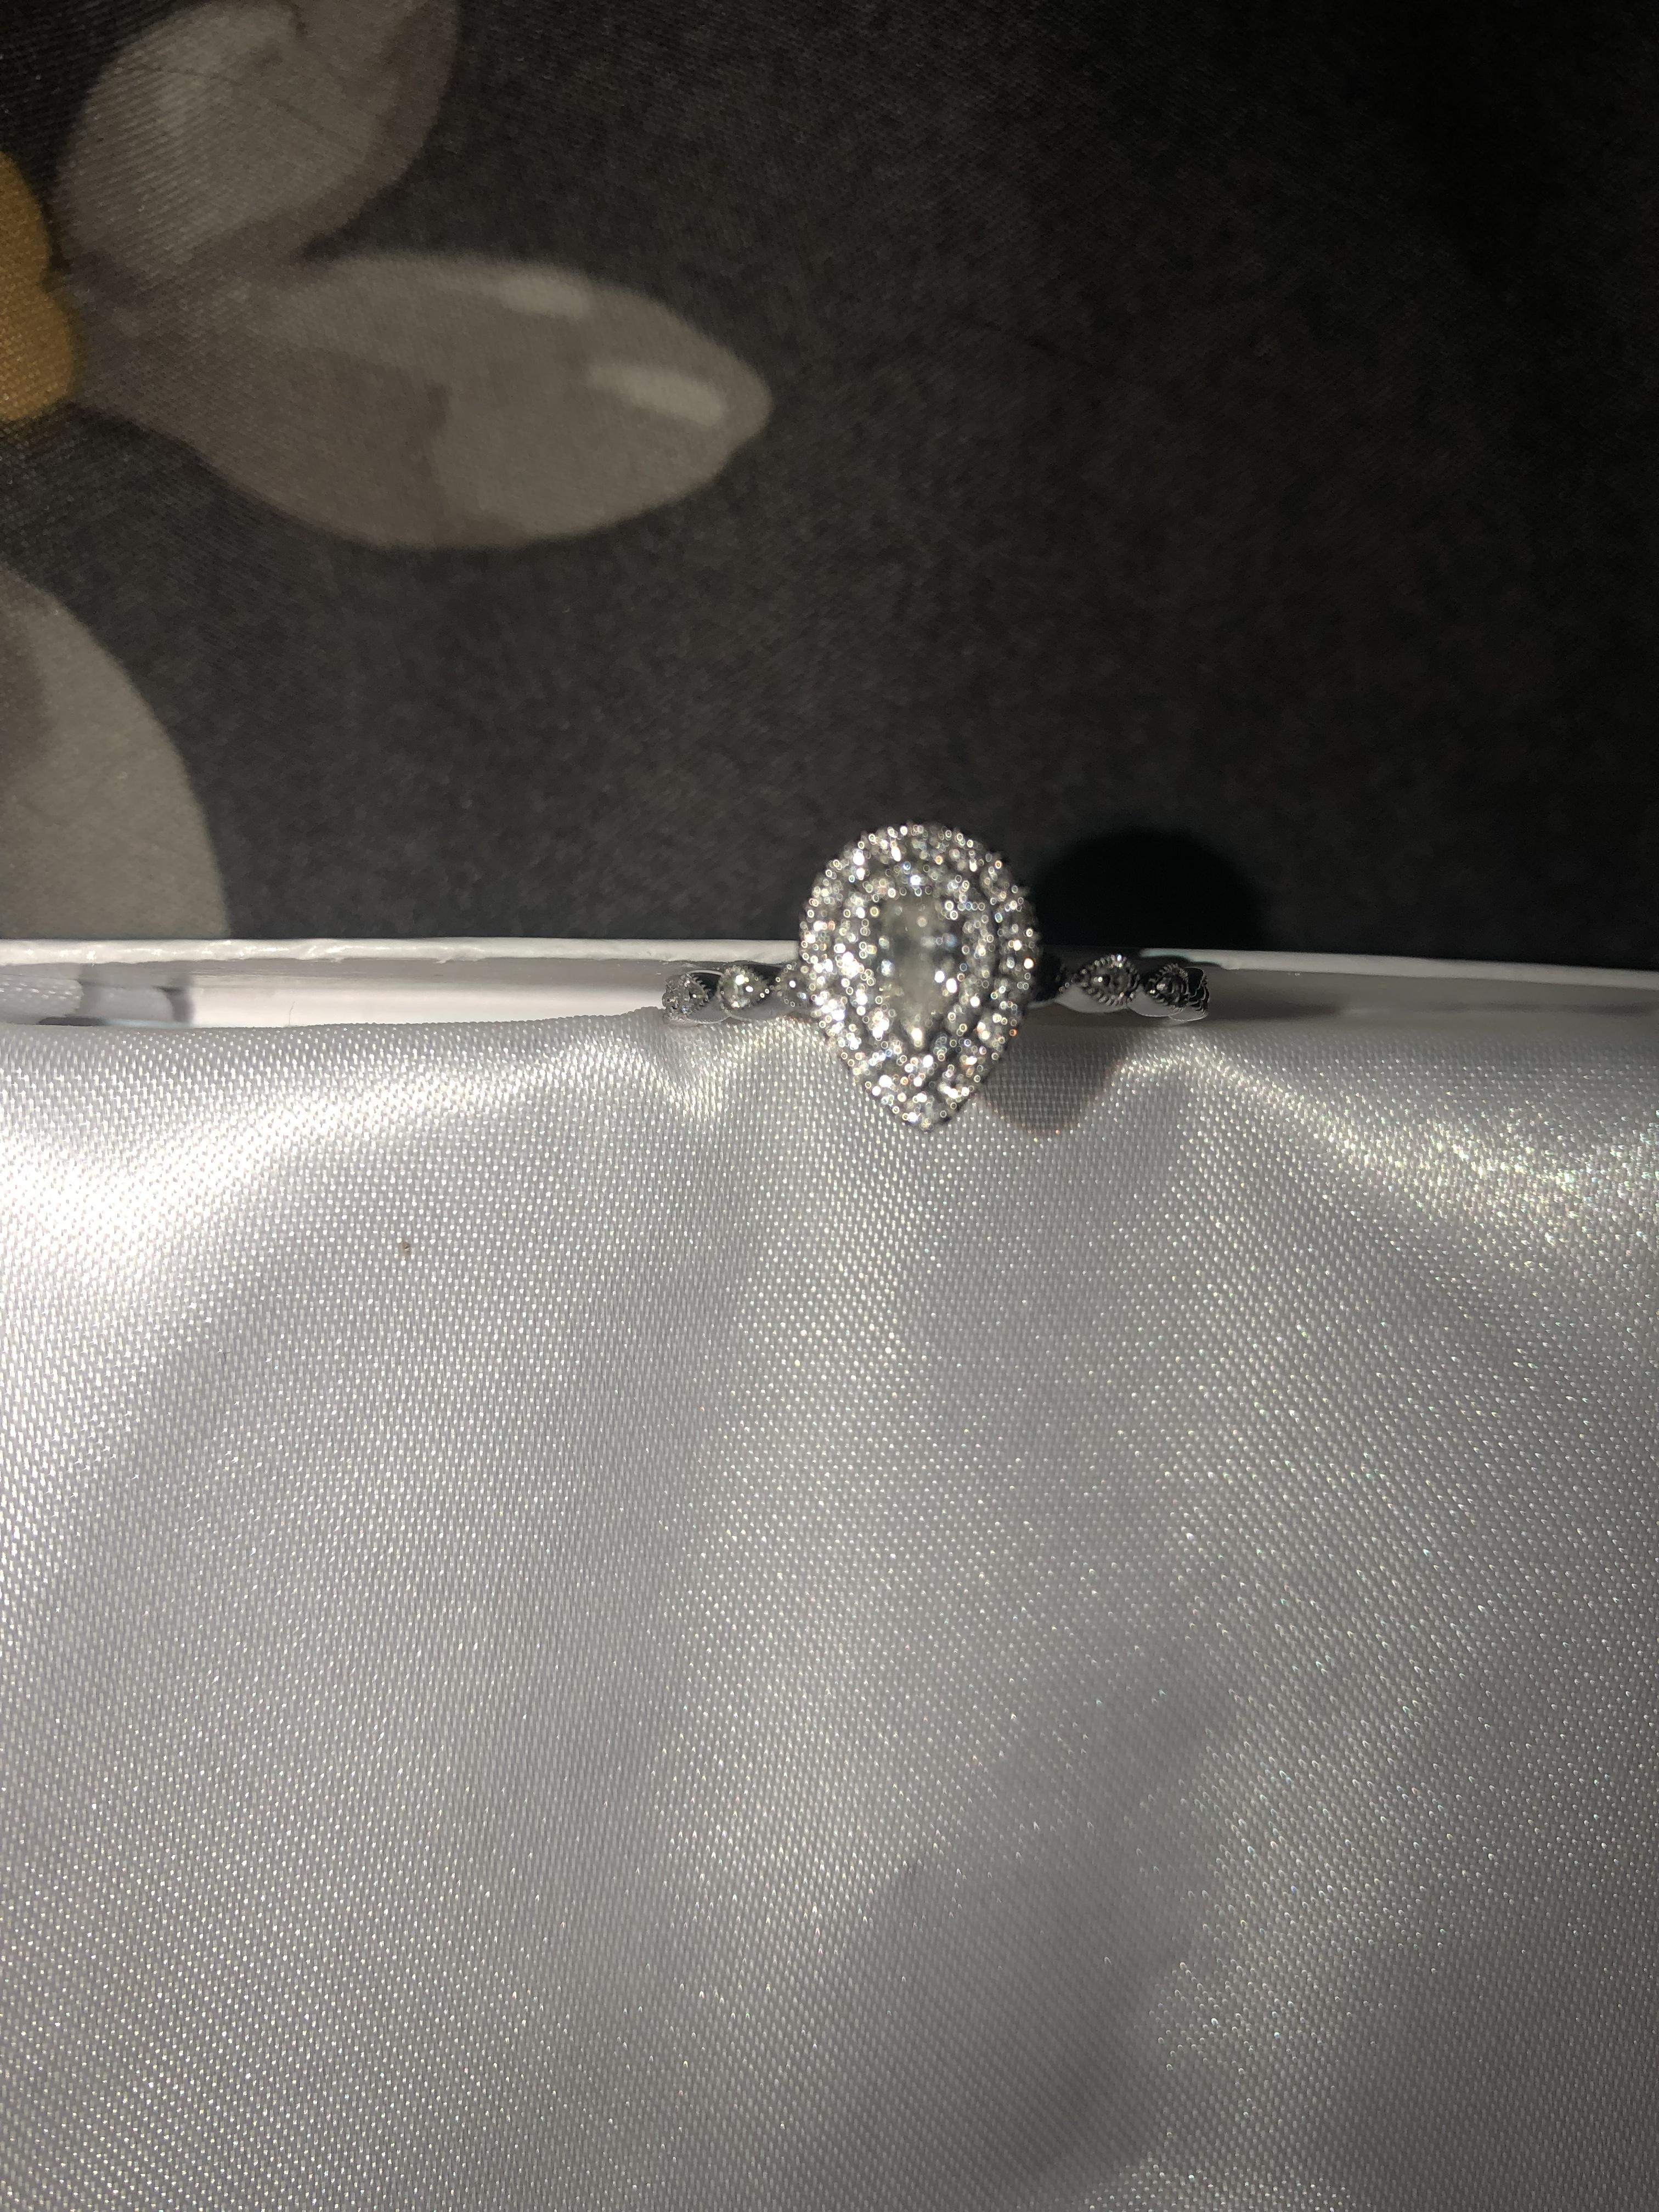 Zales Pear Shaped Diamond Wedding Engagement Ring I Do Now I Don T